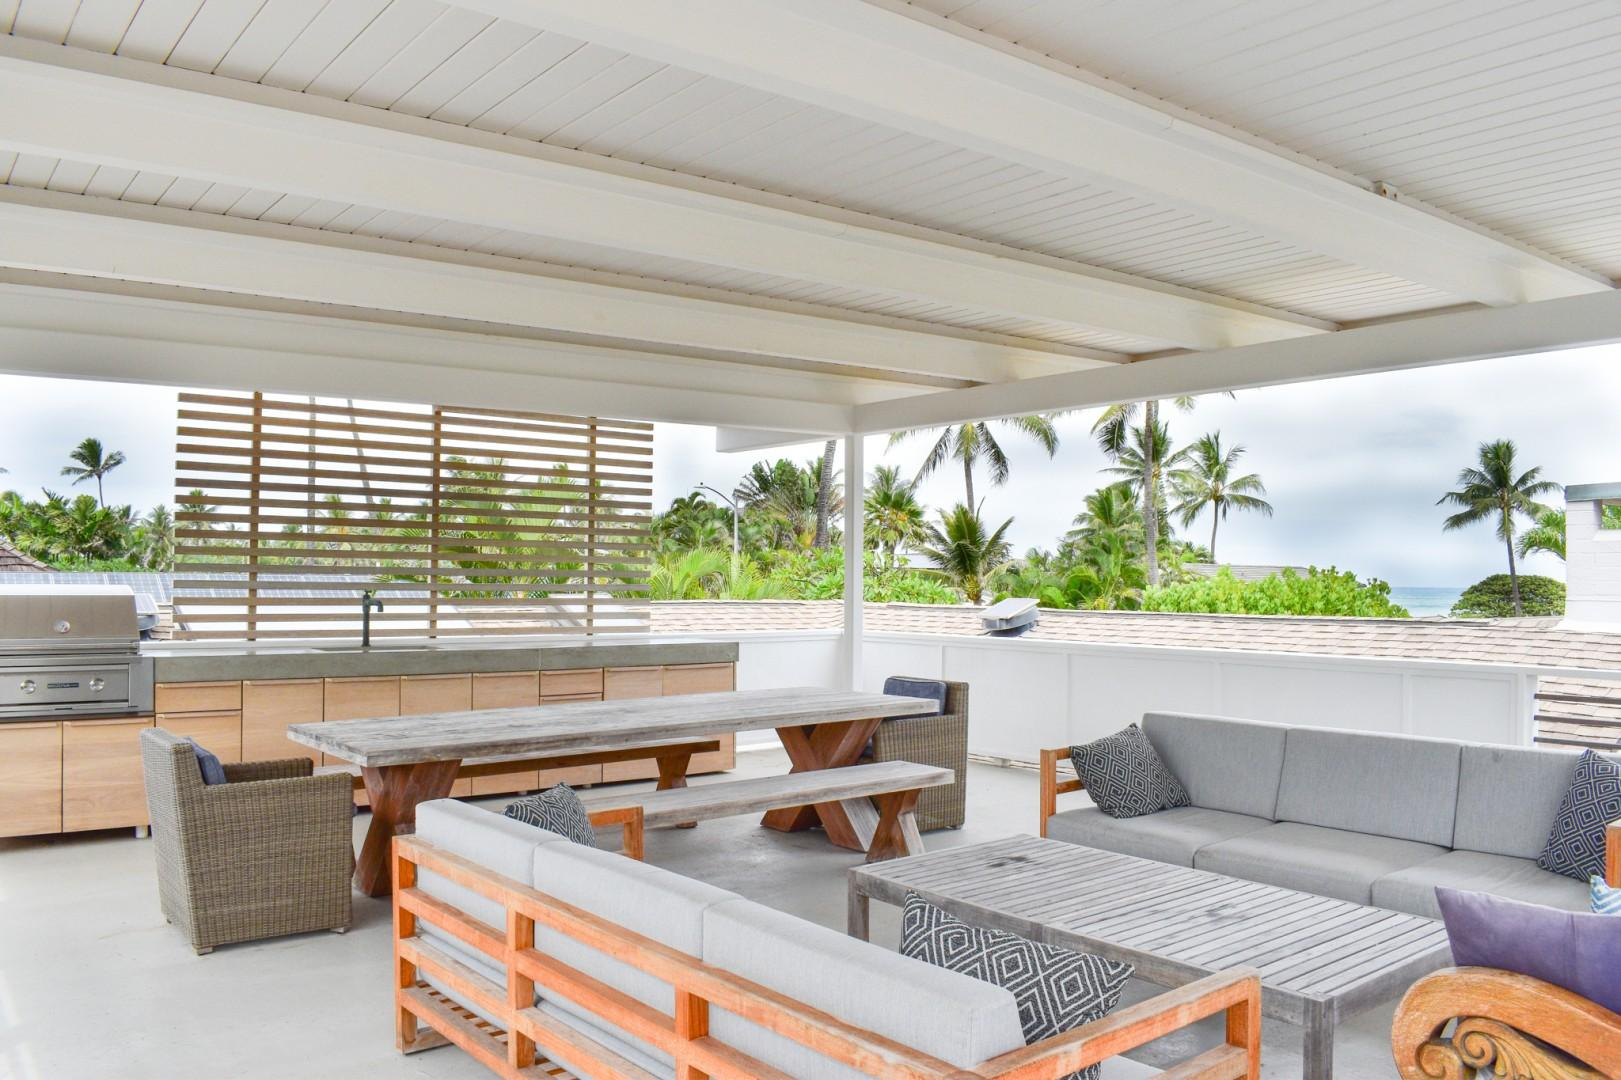 Roof top deck, with built in bbq, lounge and dining seating. Peak-a-boo ocean views!